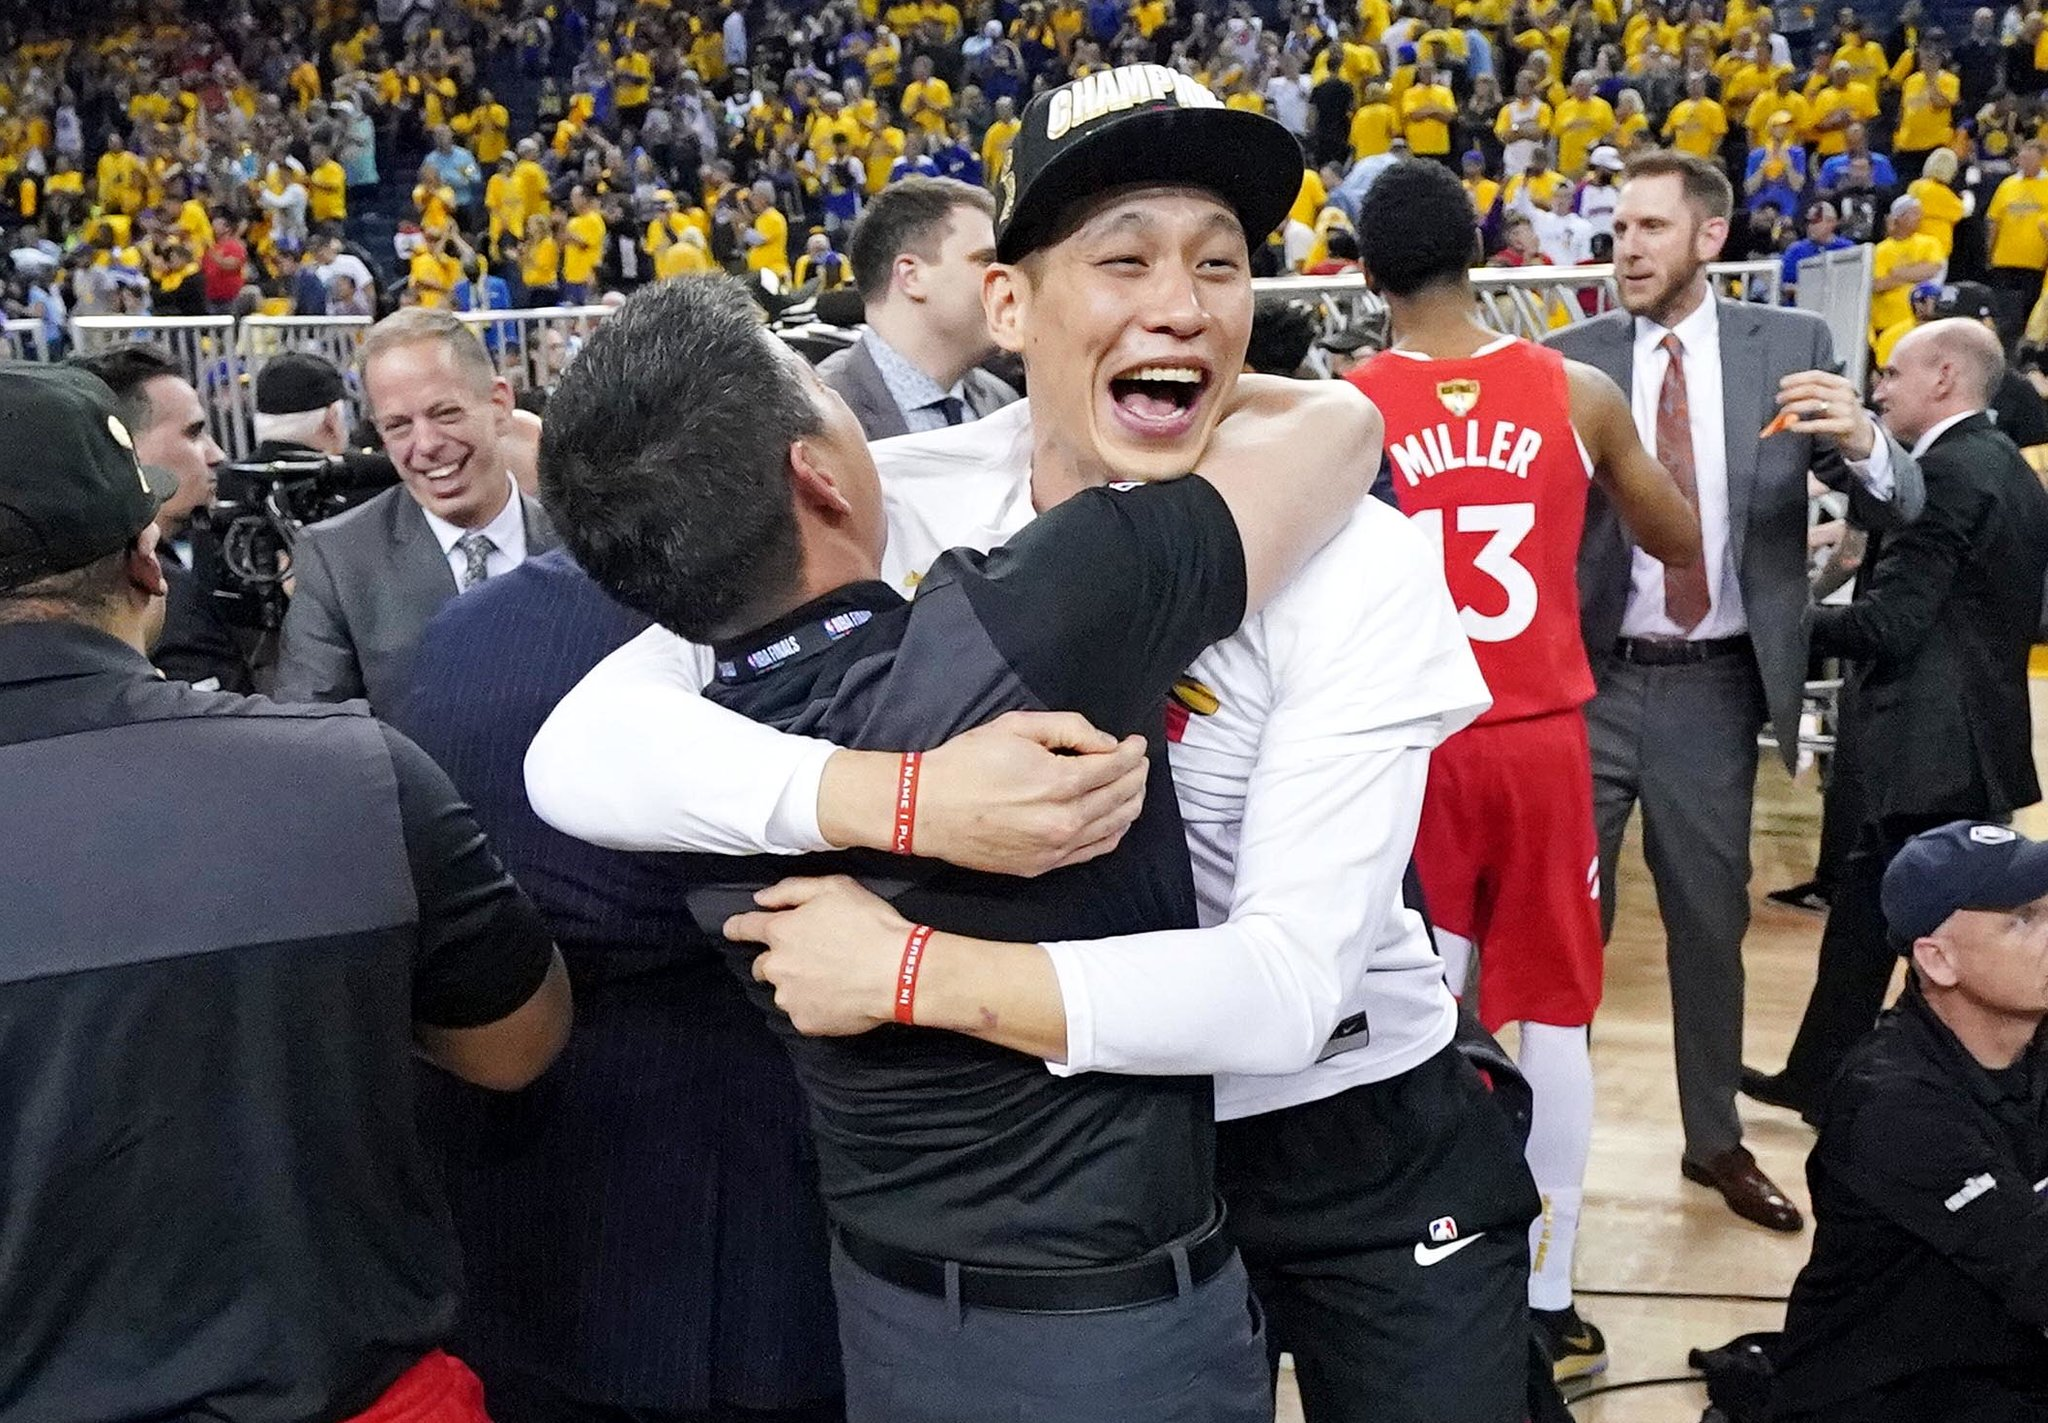 Jeremy Lin, 'Reppin' Asians With Everything I Have,' Is Bigger Than an N.B.A. Title - New York Times, June 2019A personal essay on why Jeremy Lin's N.B.A. championship with the Toronto Raptors means everything to Asian communities around the world, even if he wasn't a major contributor on the court.